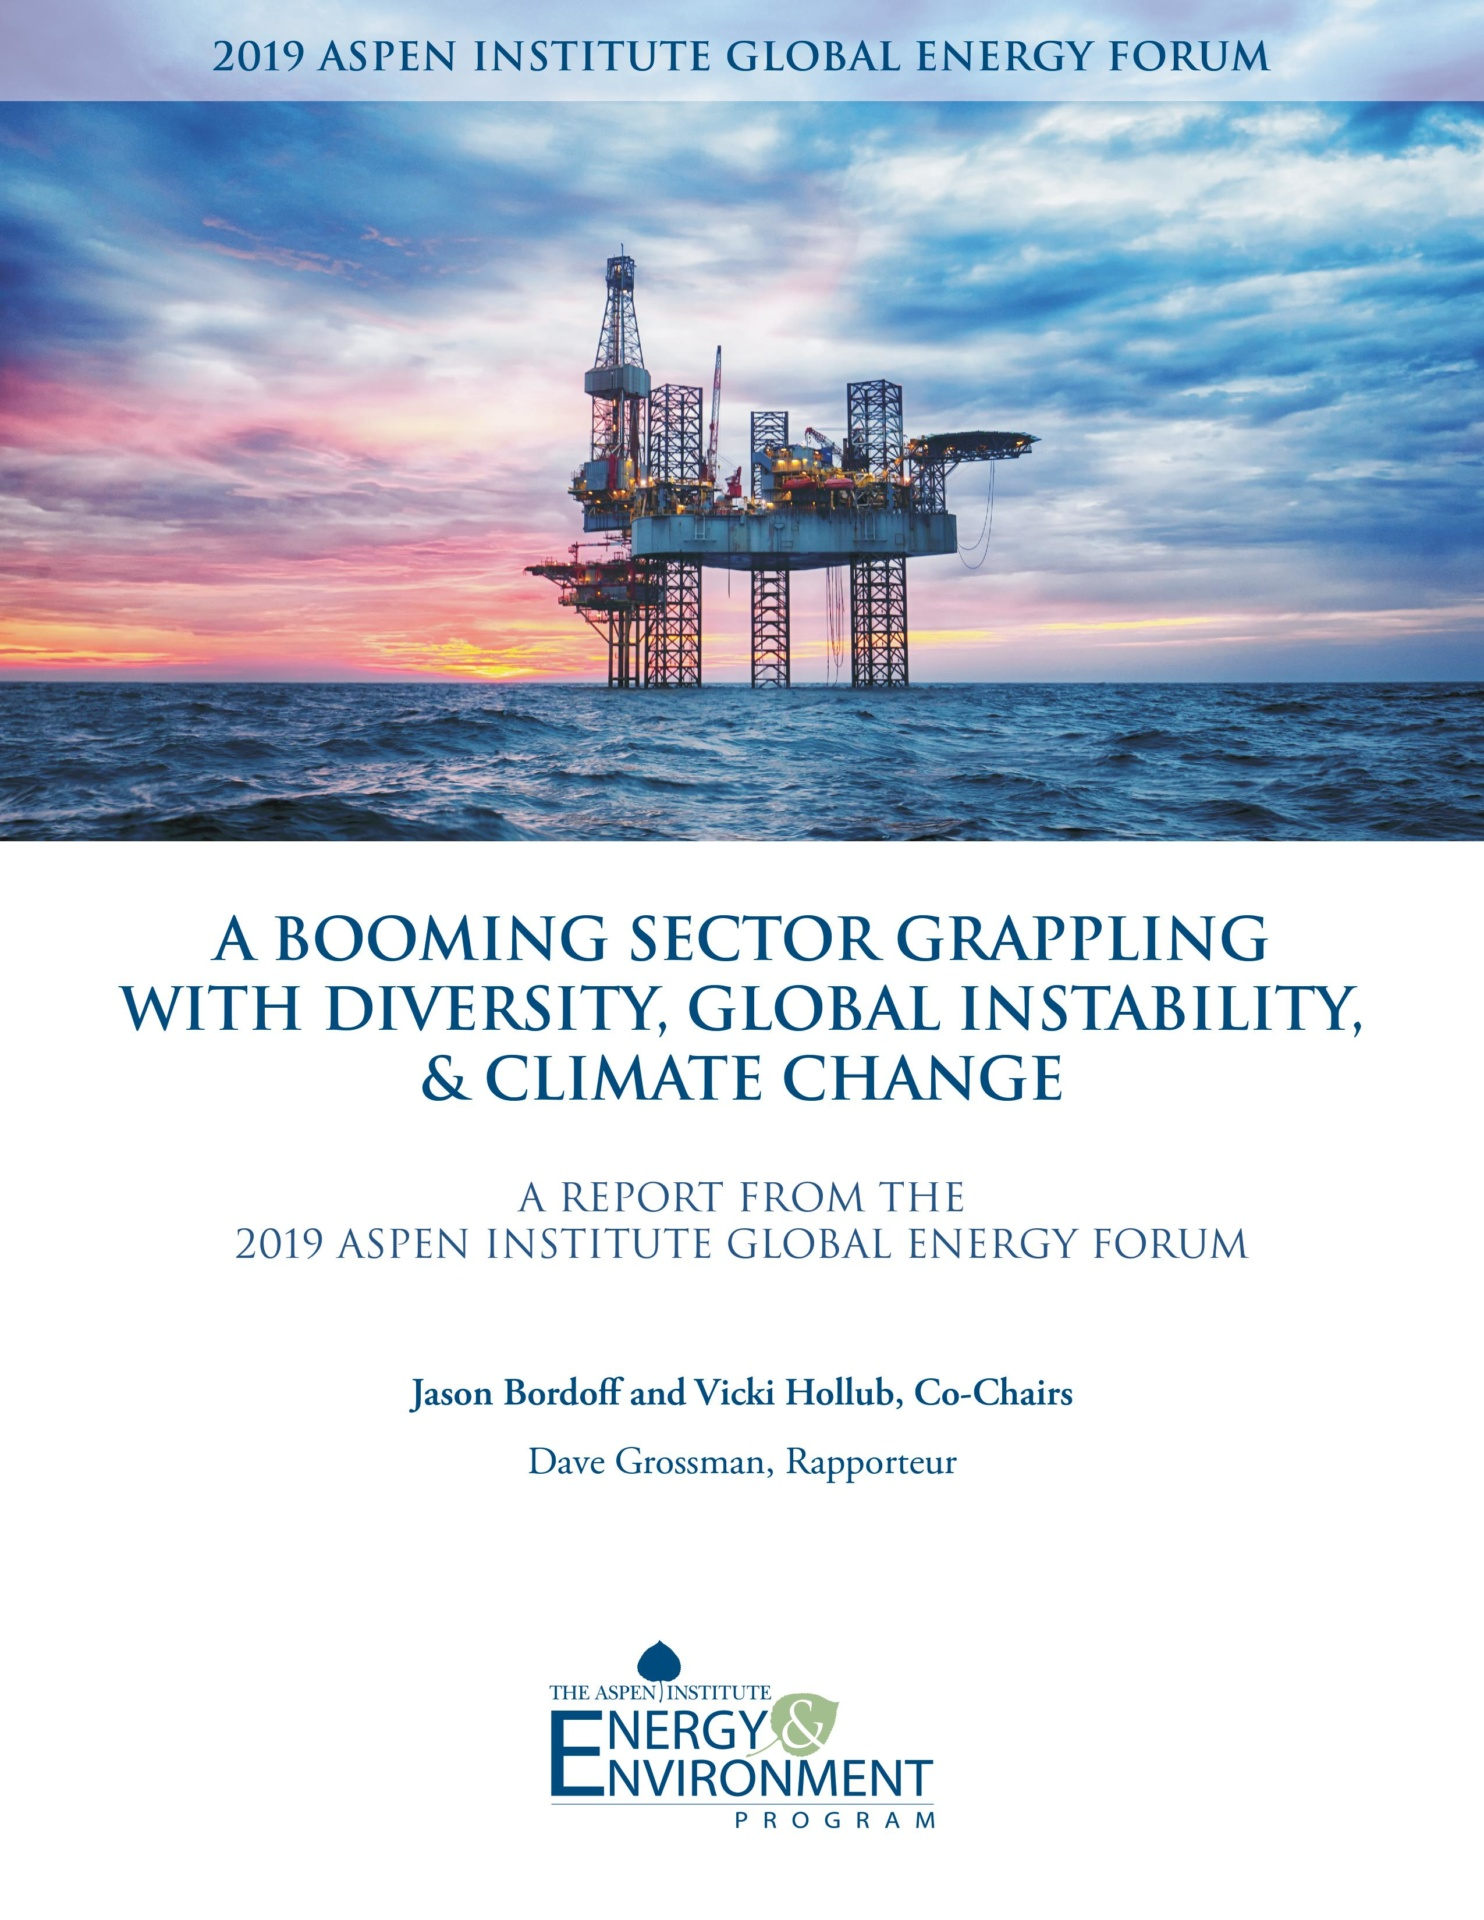 2019 Global Energy Forum Report